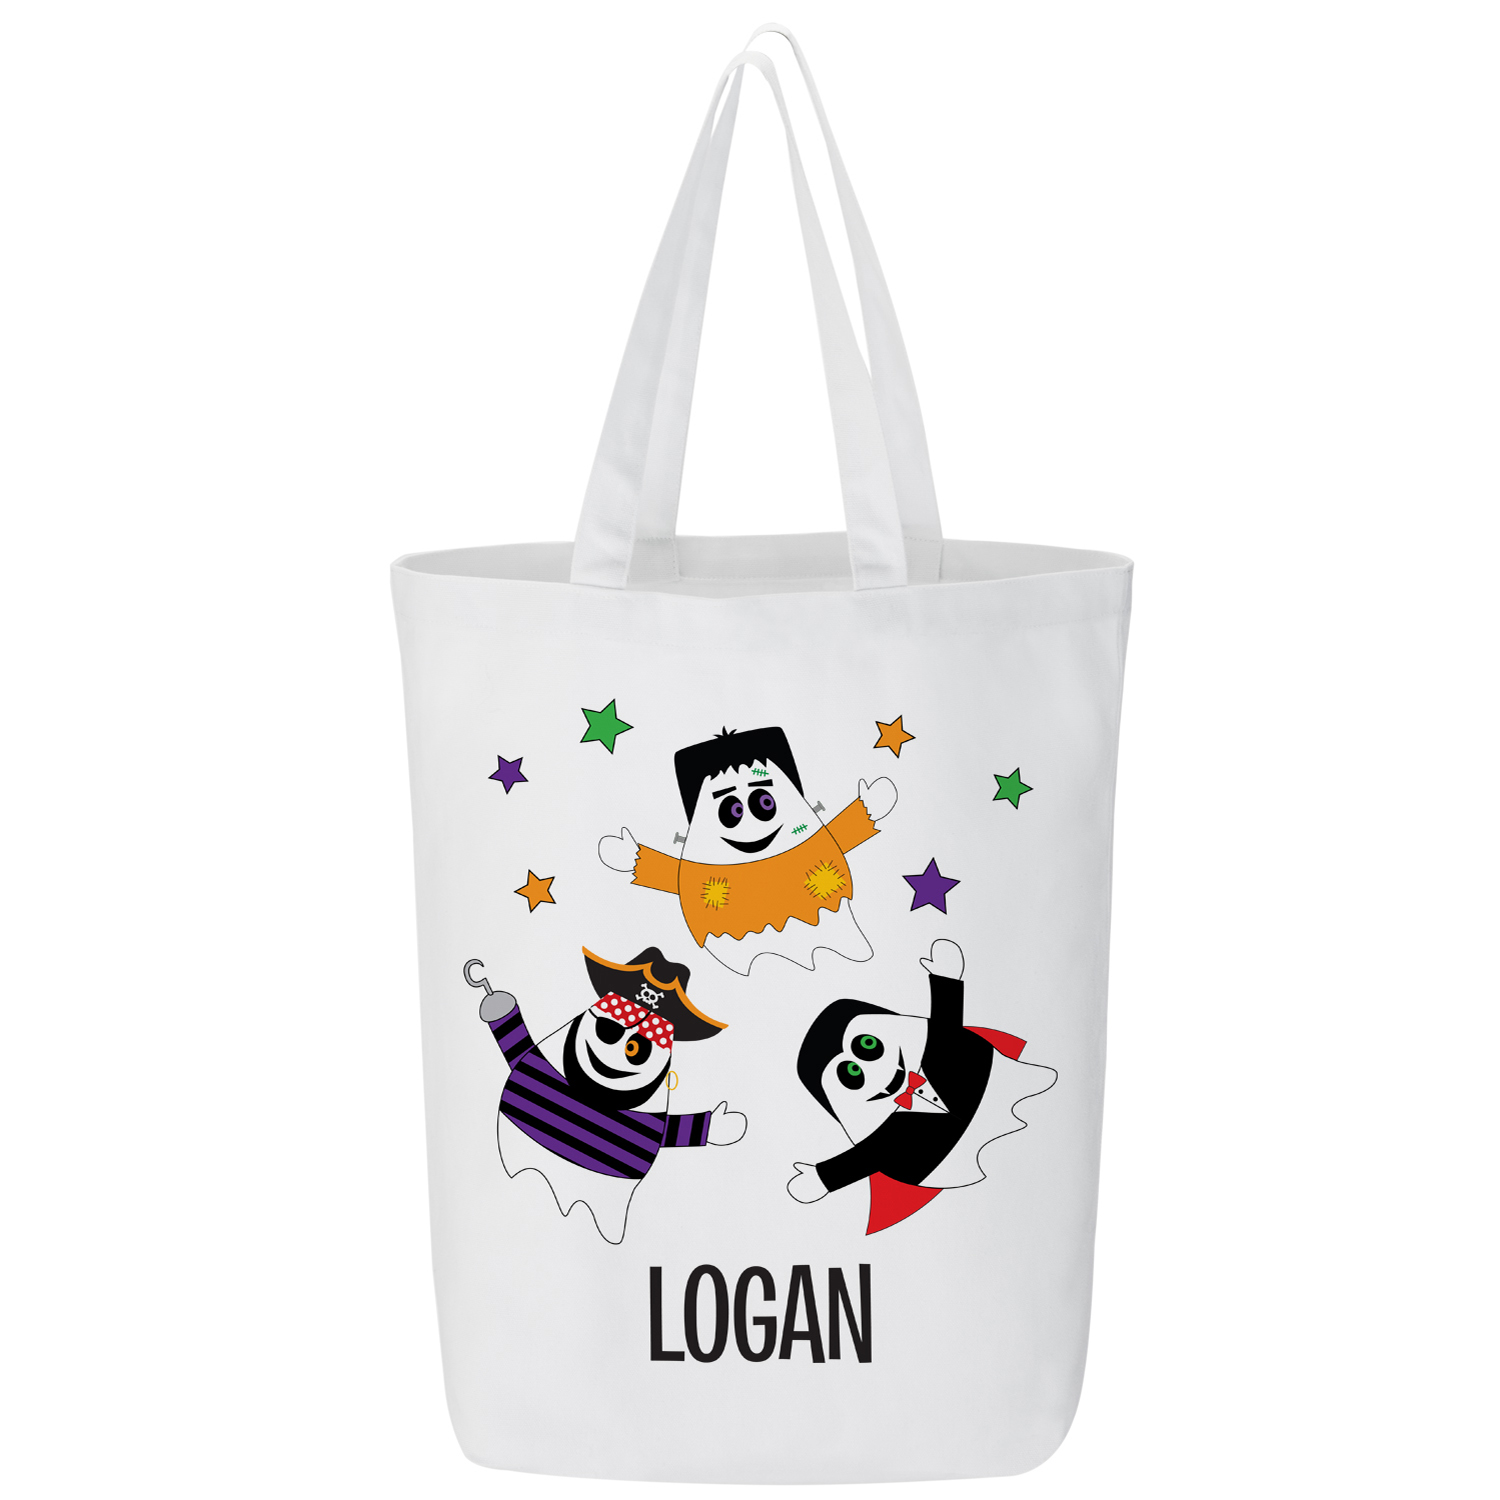 Personalized Halloween Costume Ghost Treat Bags